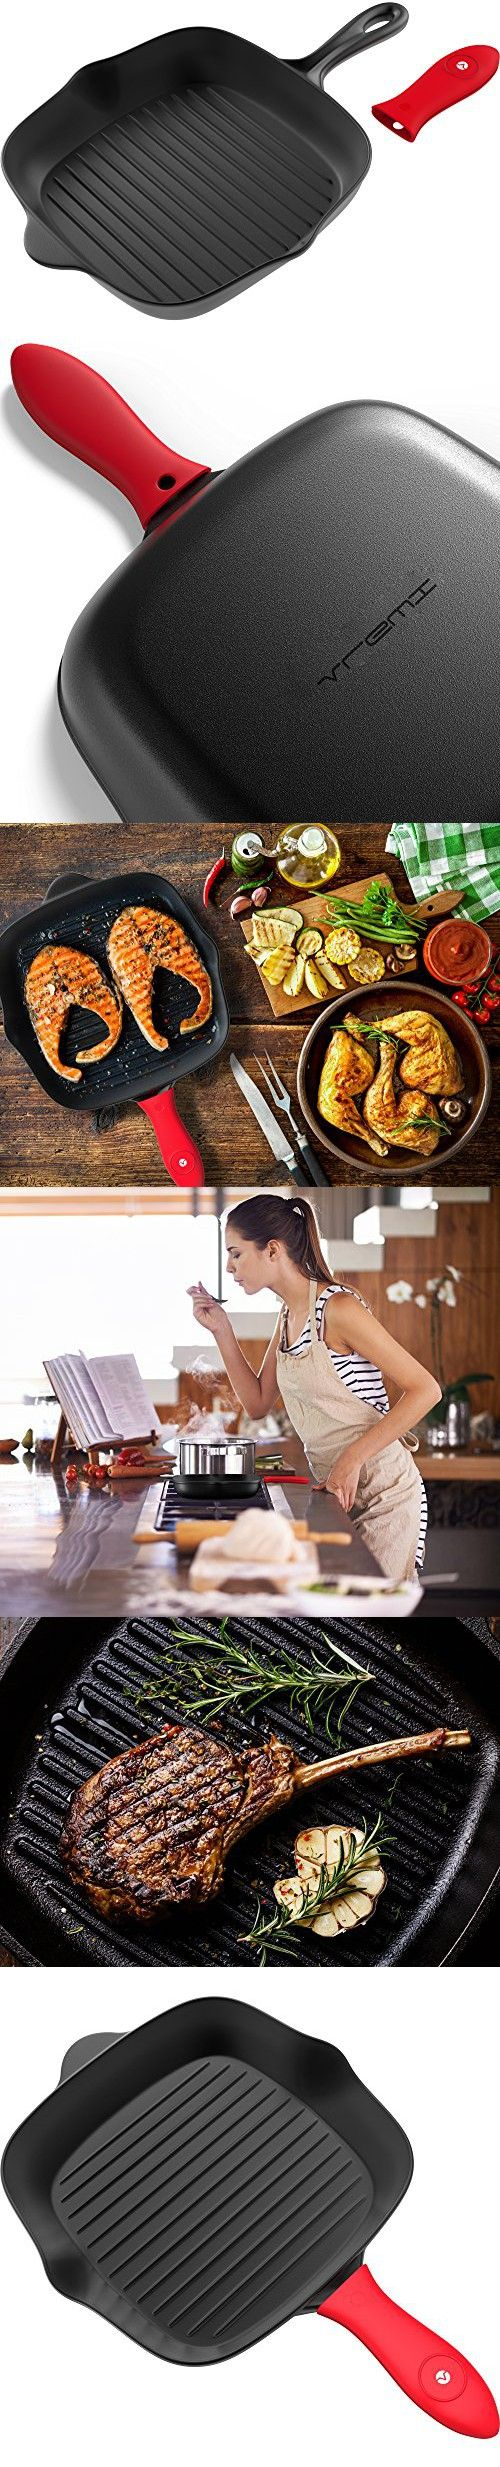 Vremi Grill Pan Cast Iron - Pre Seasoned Cast Iron Skillet Handle Cover - Stove Top Grill Pan Non Stick for Electric or Gas Stove - Indoor Grill Pan Cast Iron Cookware for Grilling Recipes